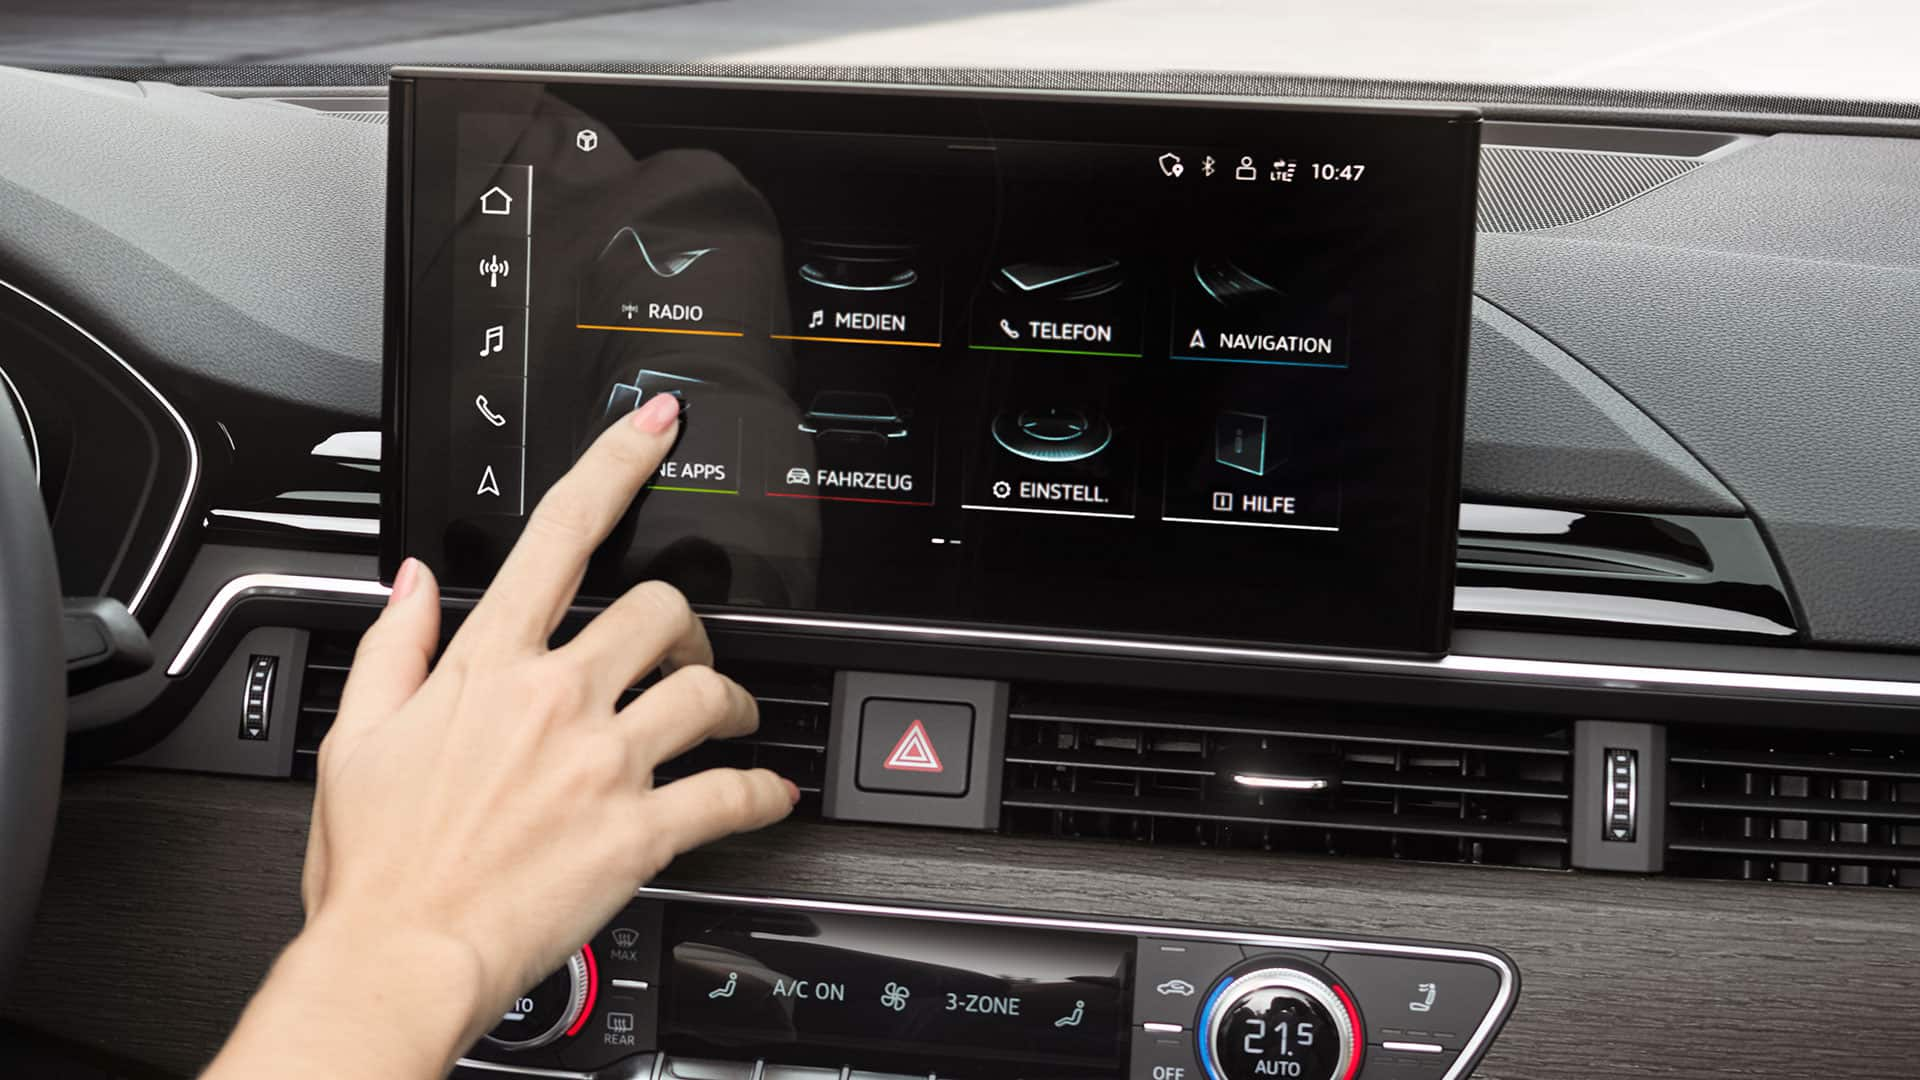 MMI touch display in the Audi A5 Cabriolet